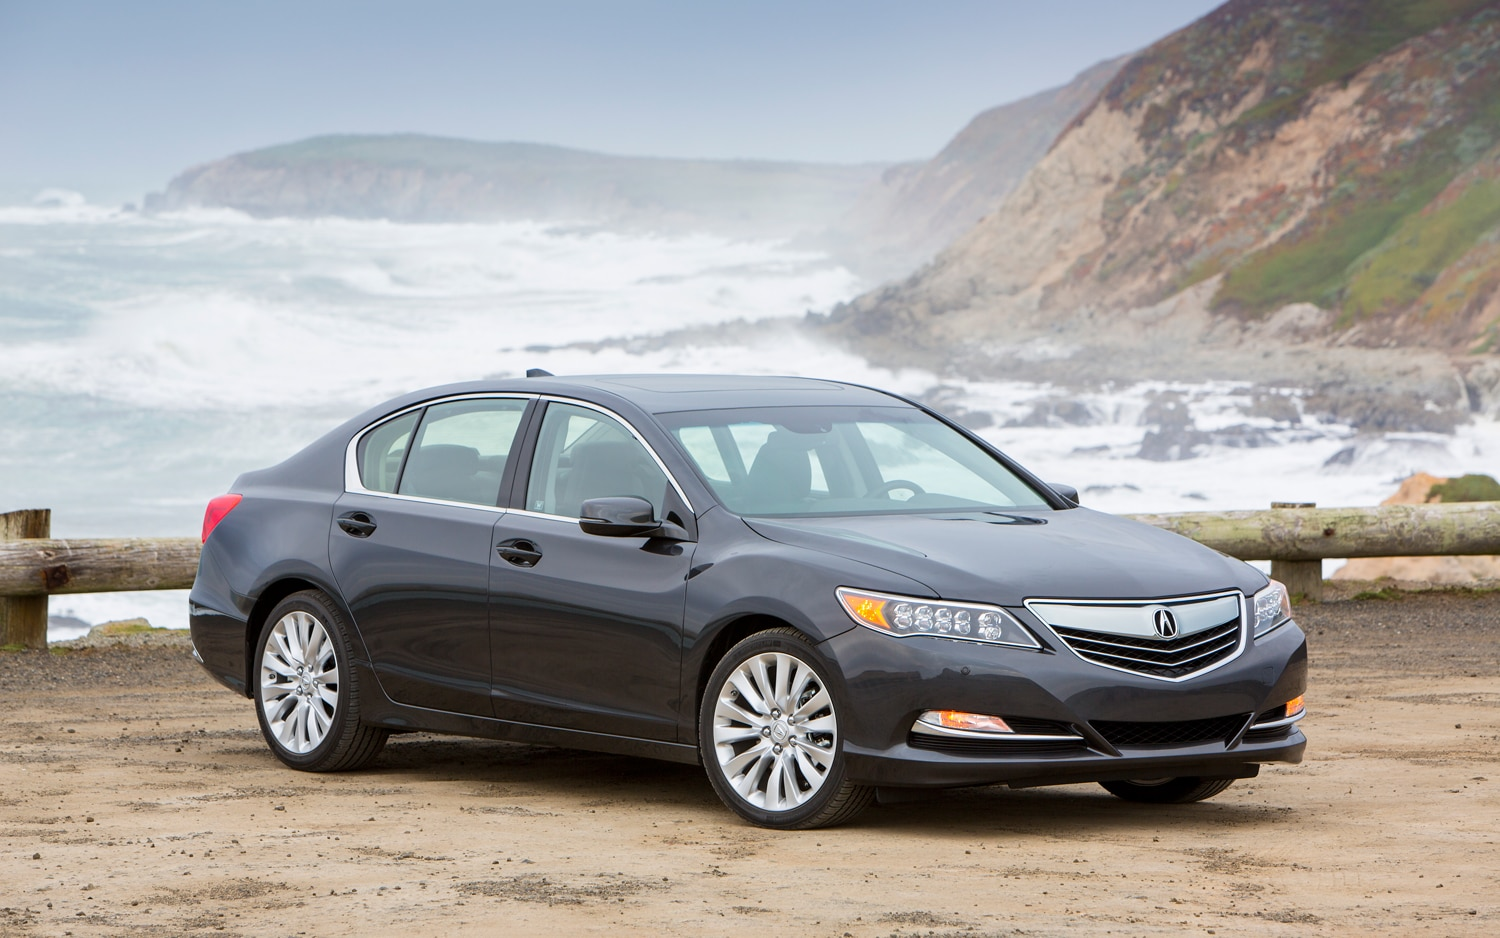 2014 Acura RLX Front Three Quarter Static 21